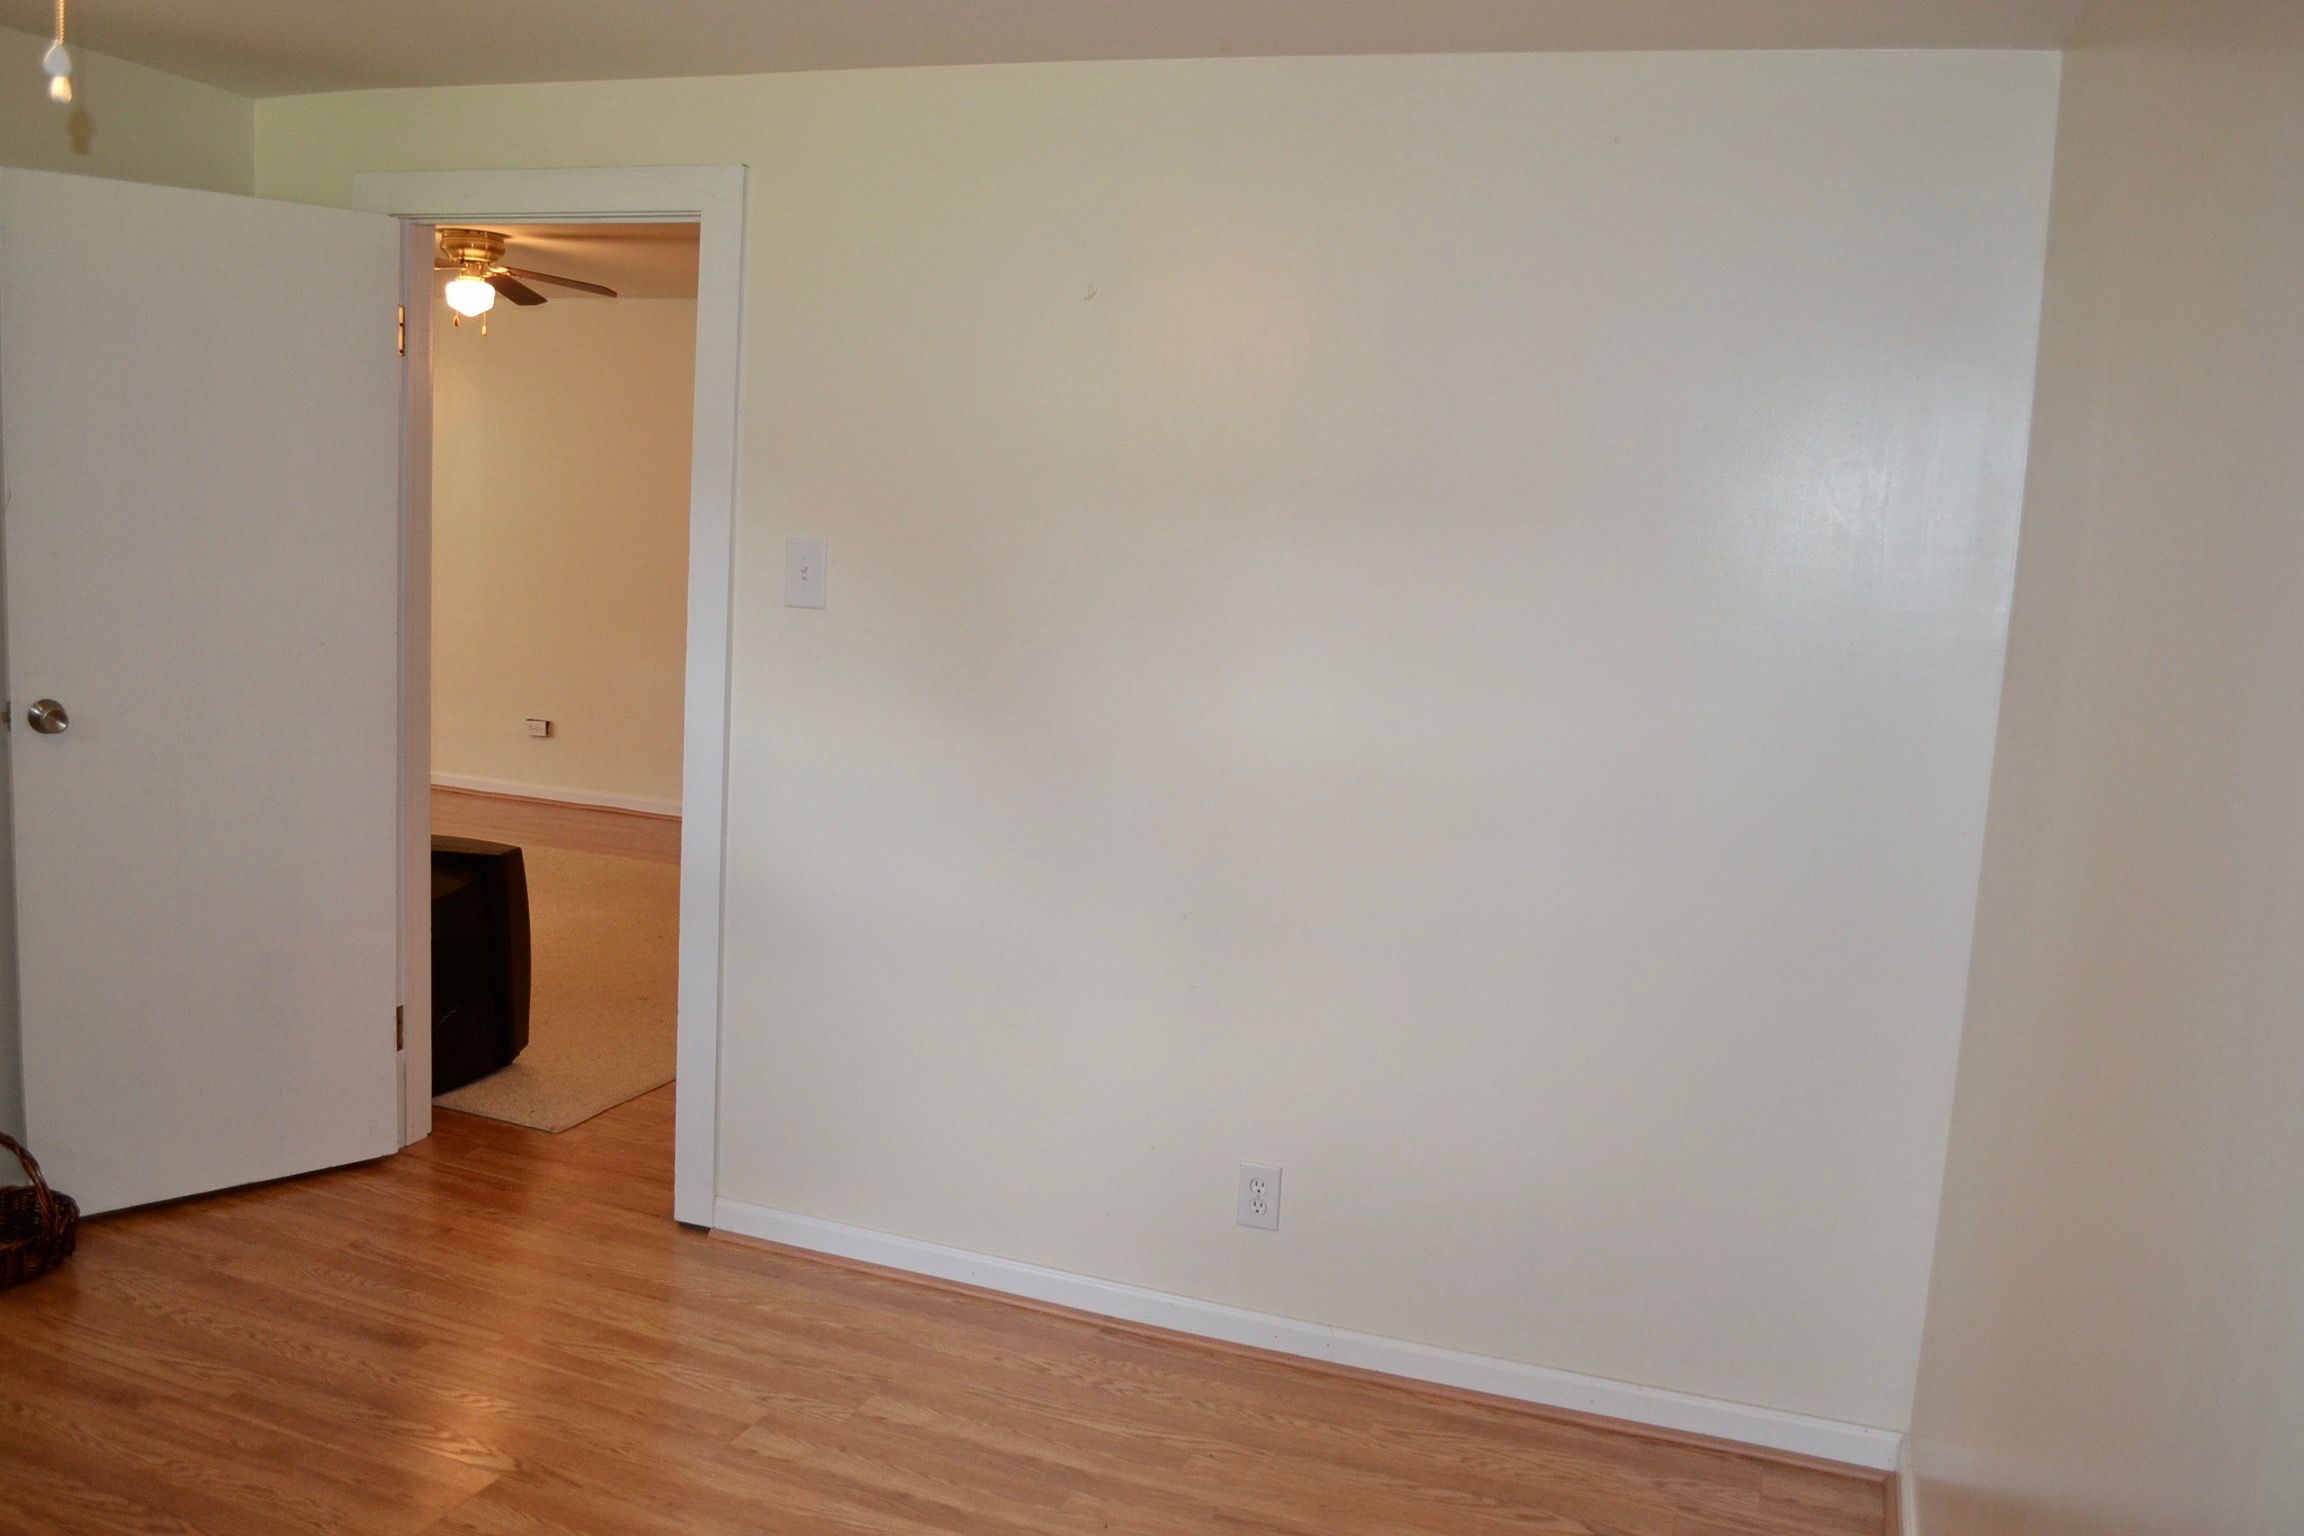 Basement-Finished Room 2-3.jpg